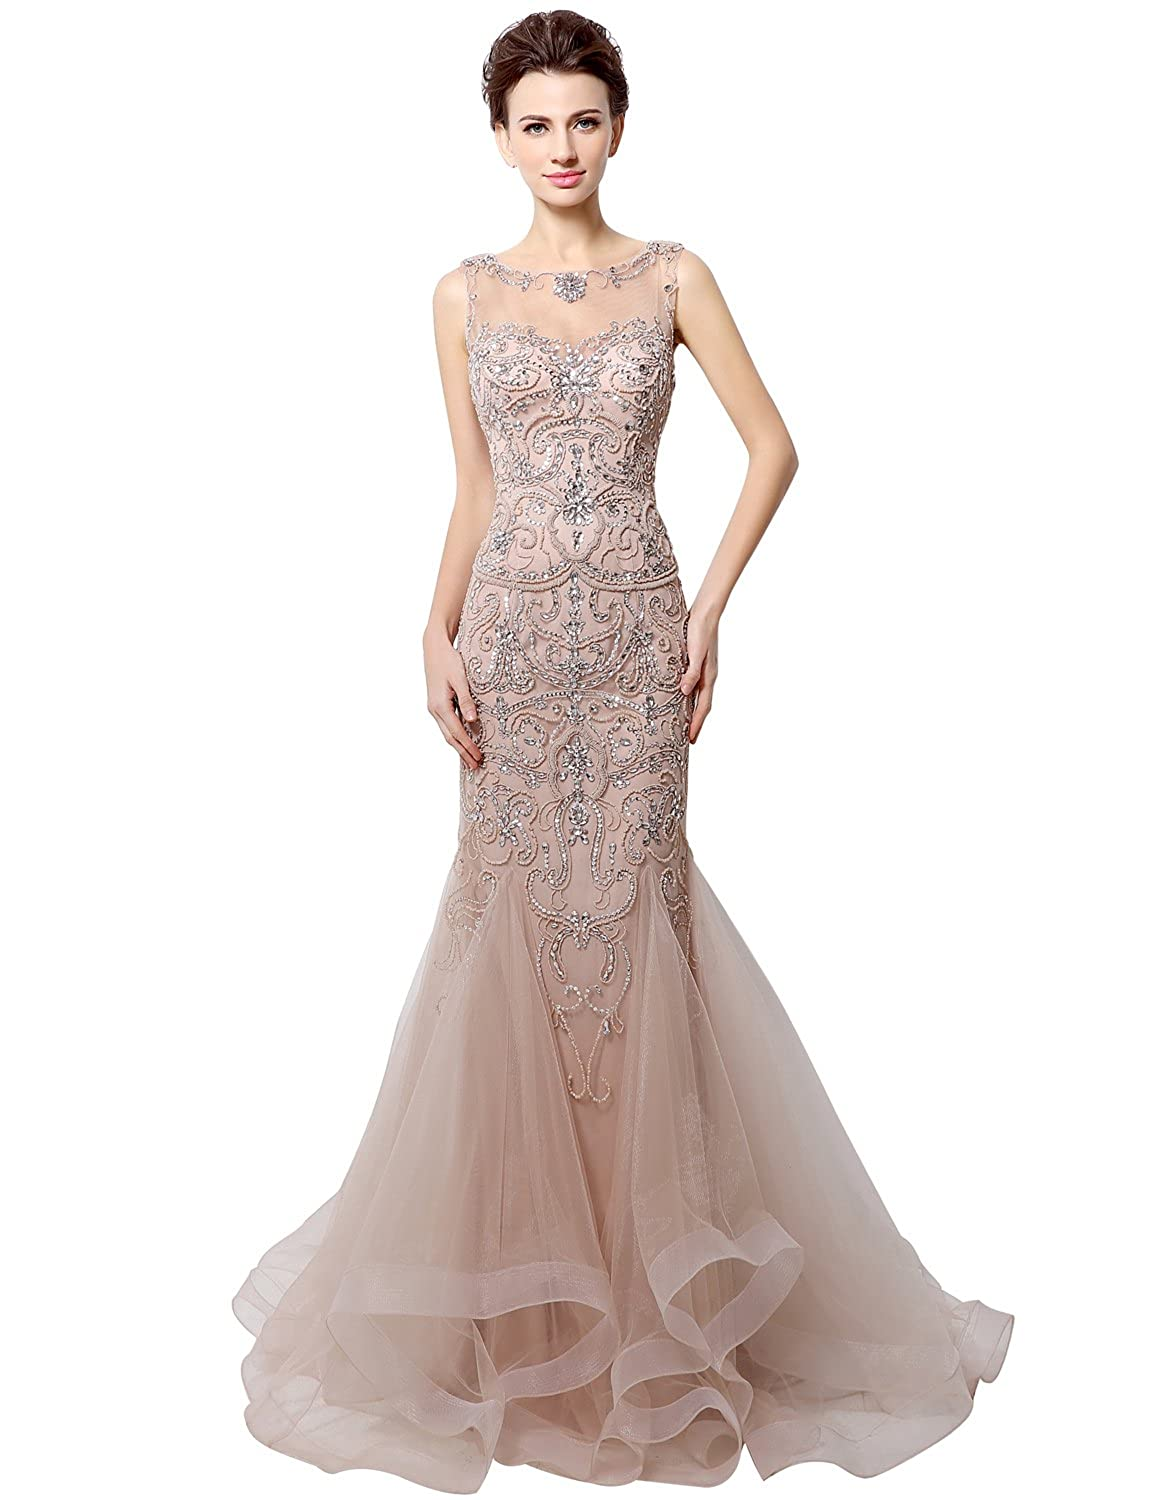 What to wear to a wedding wedding guest dress ideas for Amazon wedding guest dress